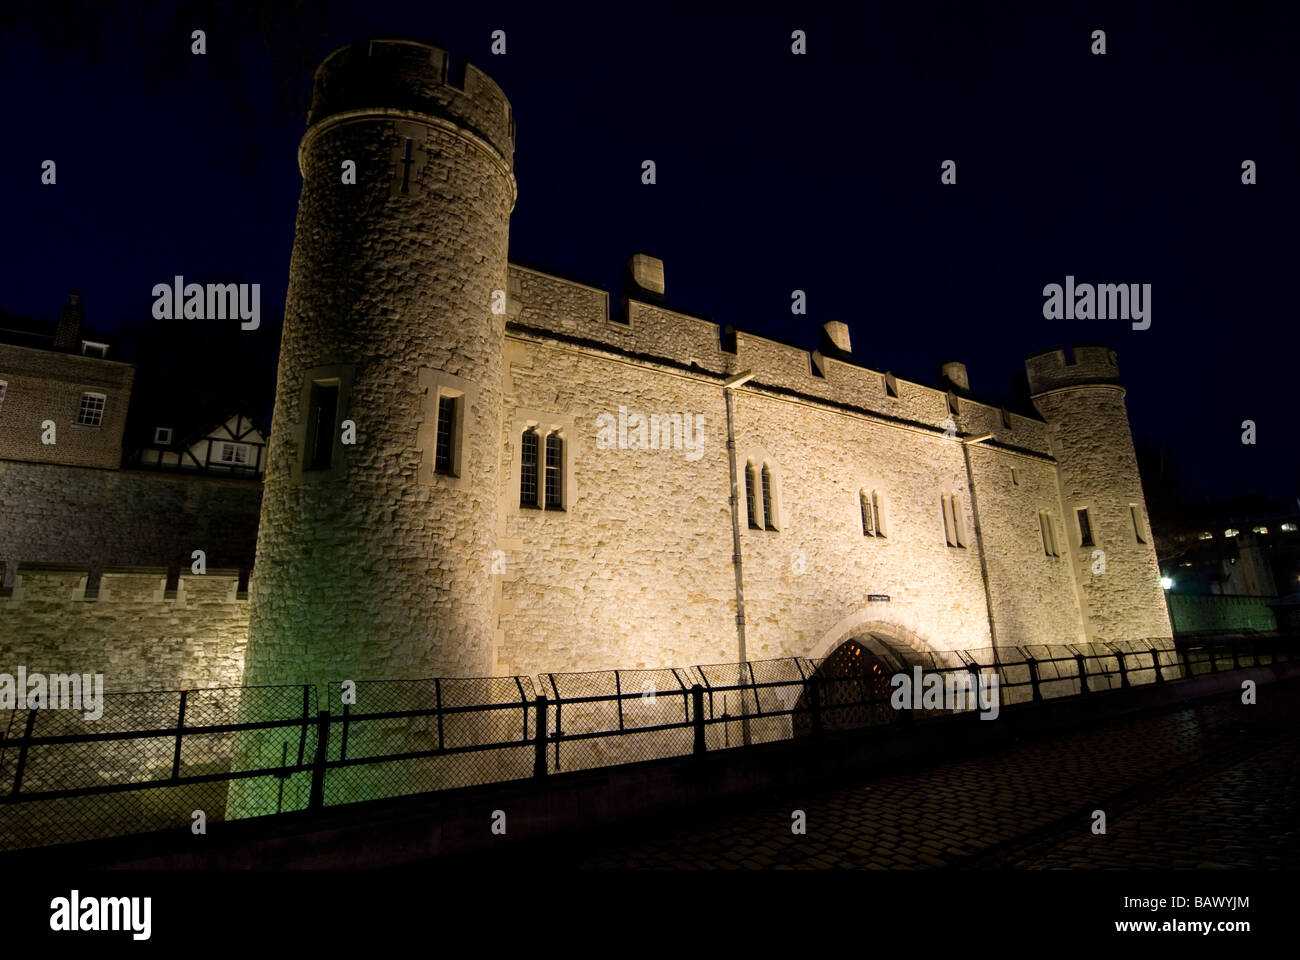 Tower of London at night - Stock Image